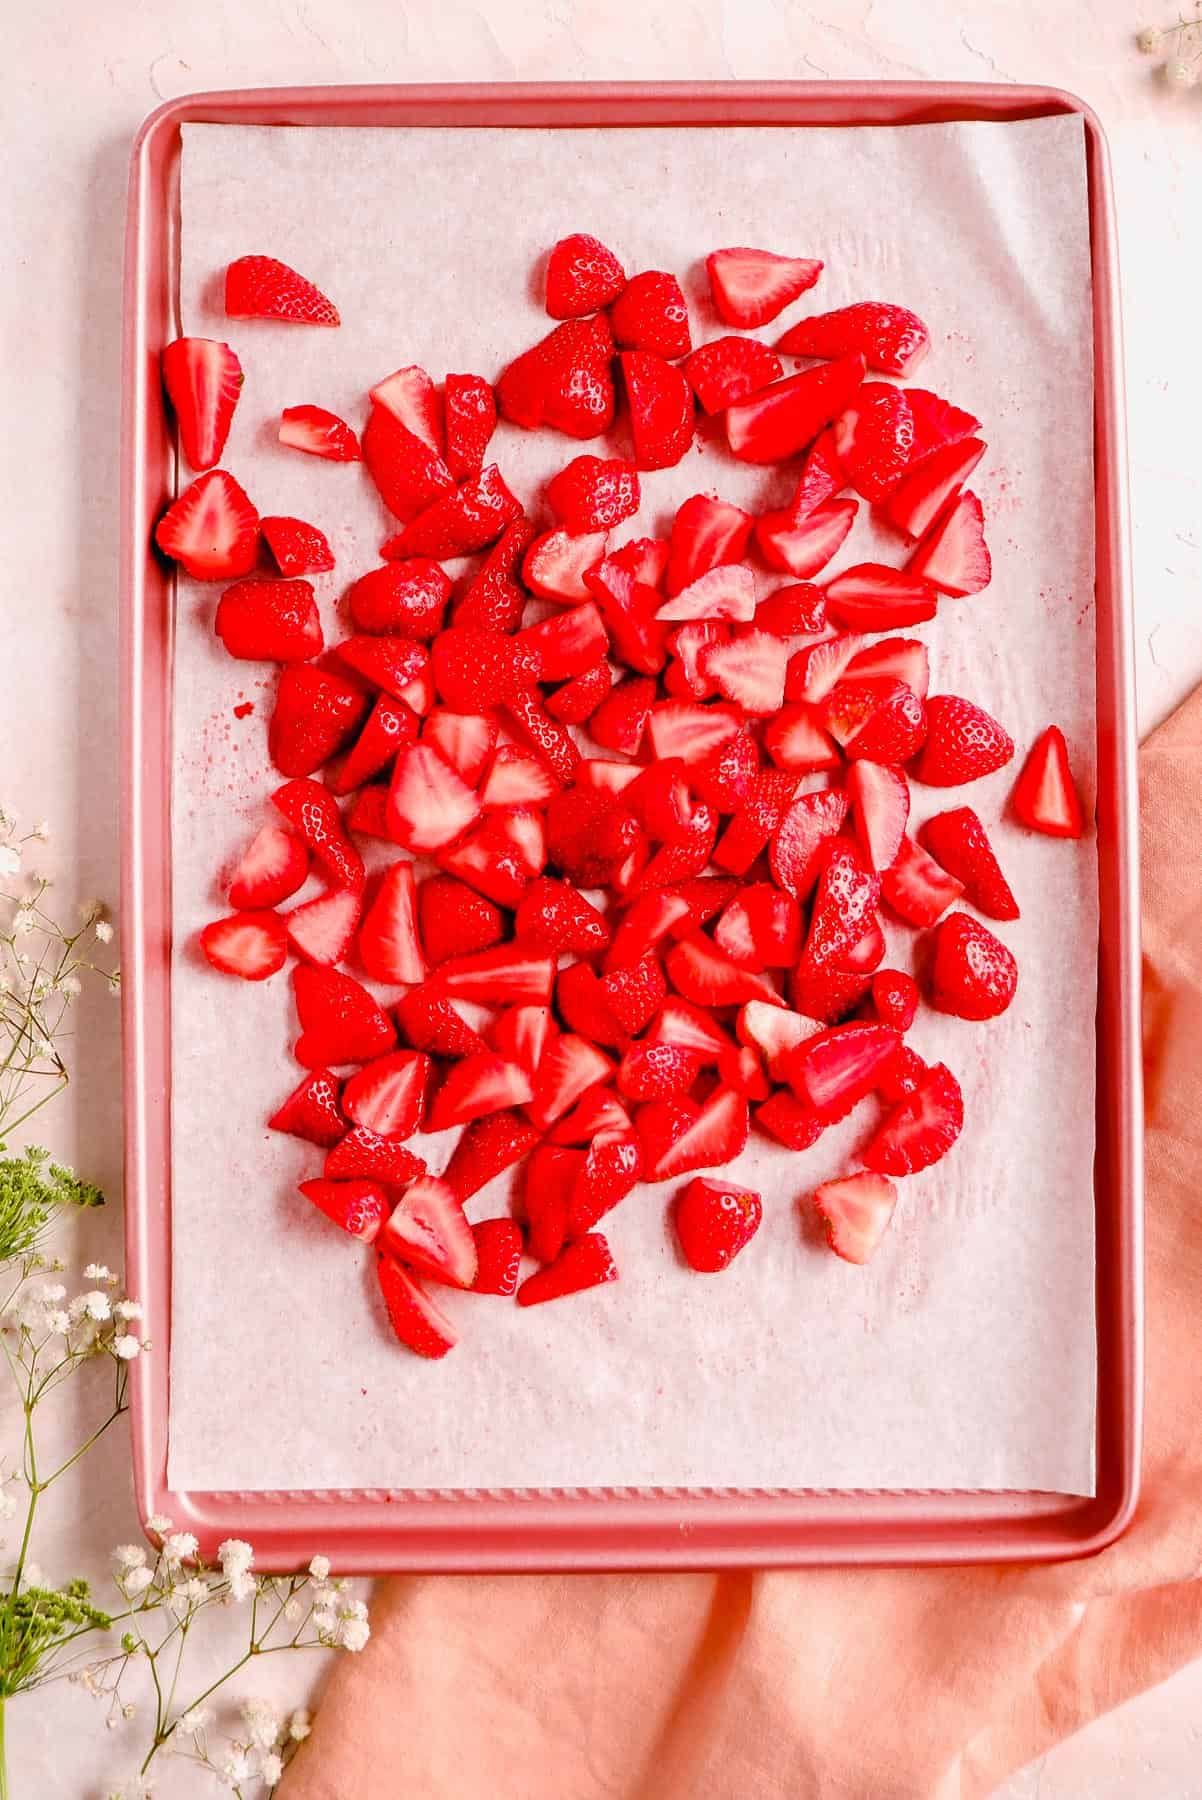 quartered fresh strawberries in a parchment lined pink baking pan.